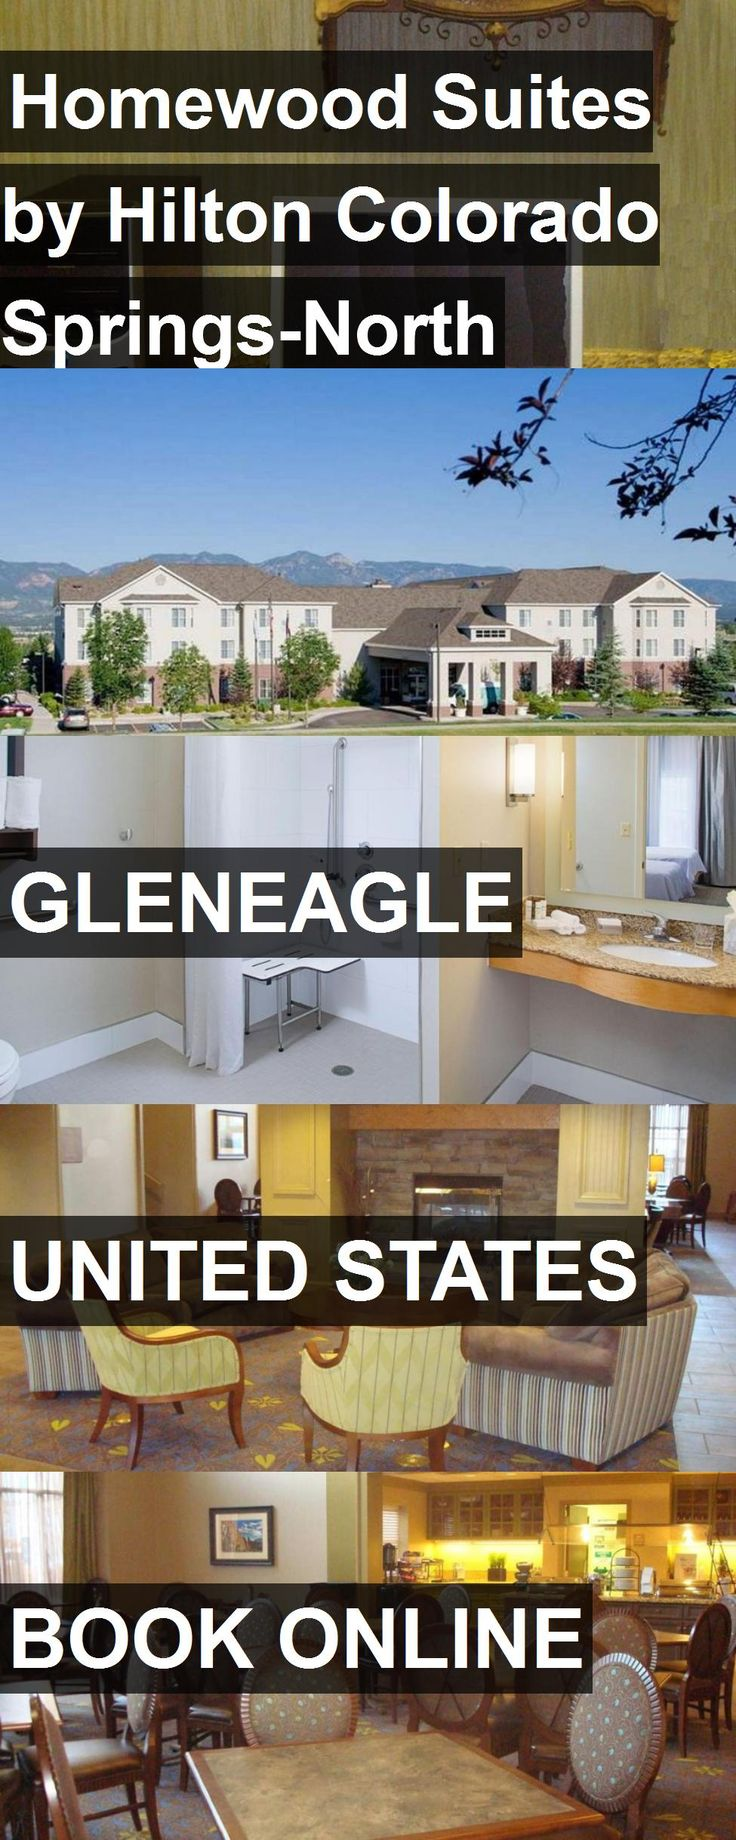 Hotel Homewood Suites By Hilton Colorado Springs North In Gleneagle United States For